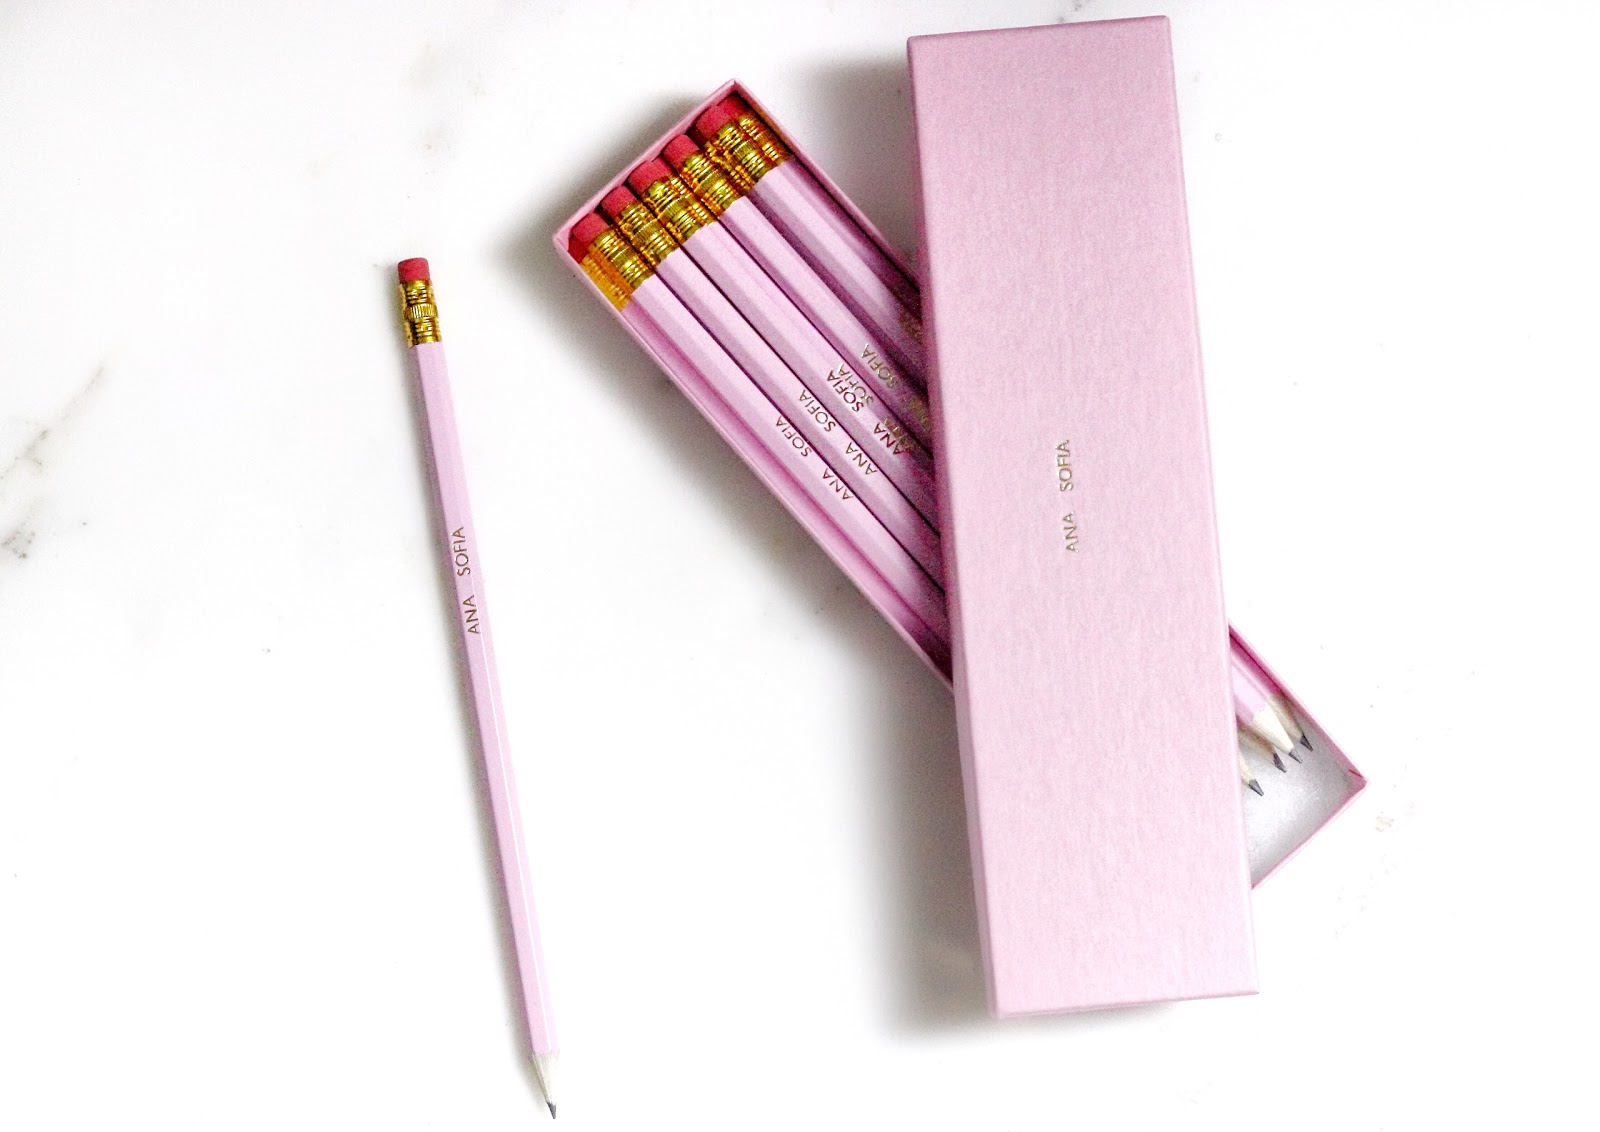 i just love it, personalised gifts, blogger, anasofiachic, beauty blogger, fashion blogger, lifestyle blogger, makeup blogger, british blogger, personalised, pink pencils, alice in wonderland, led wall letters